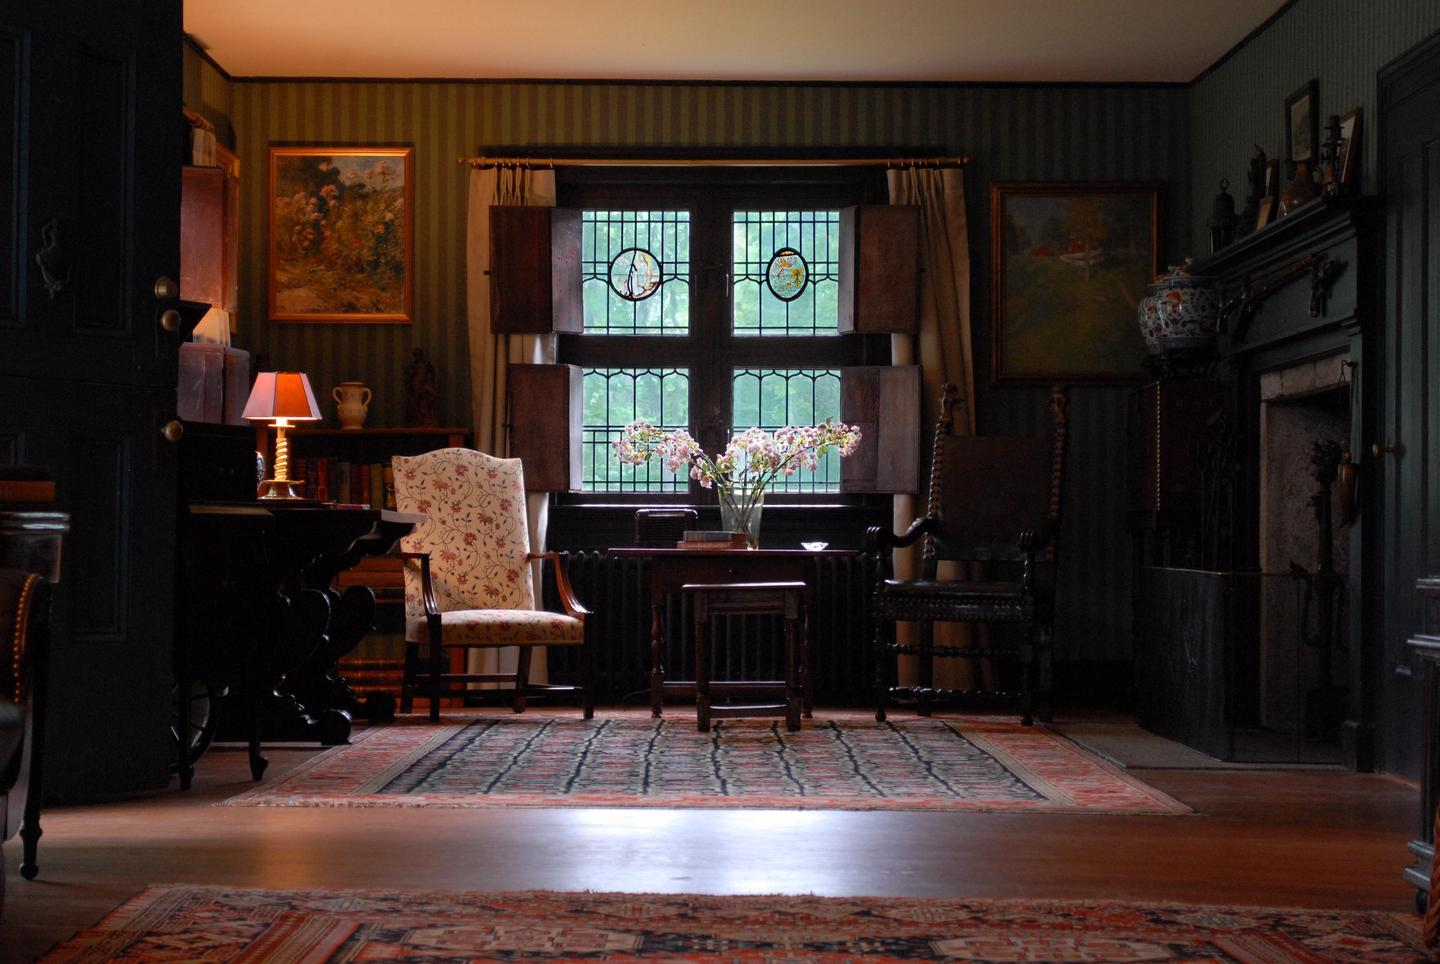 Living Room of the Weir HouseWeir House tours are offered seasonally, Wednesday through Sunday.